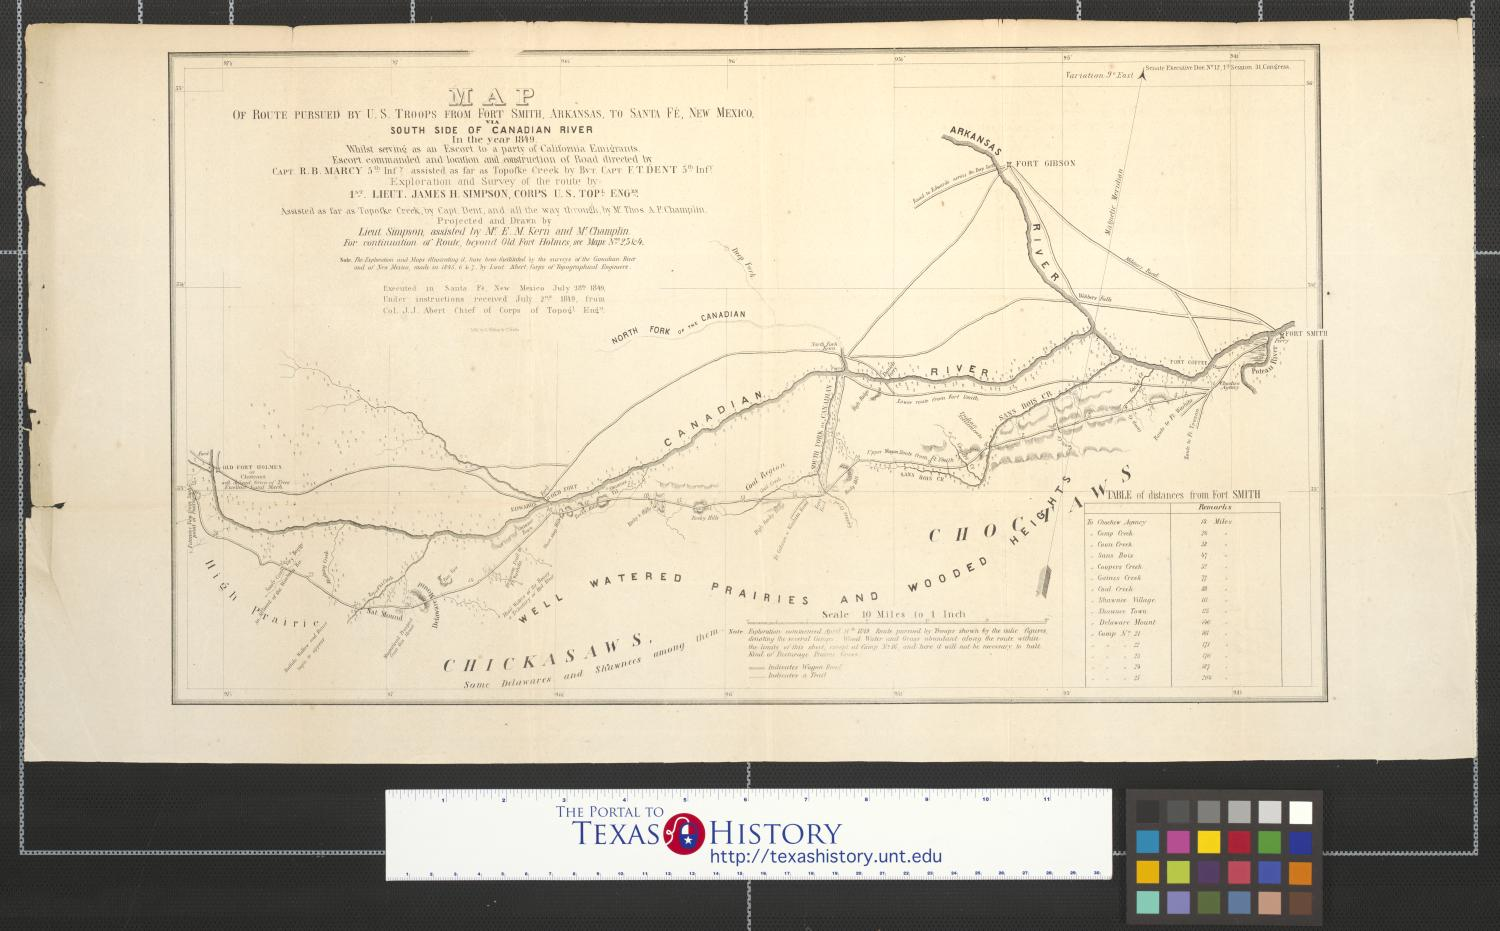 Map Of Route Pursued By U S Troops From Fort Smith